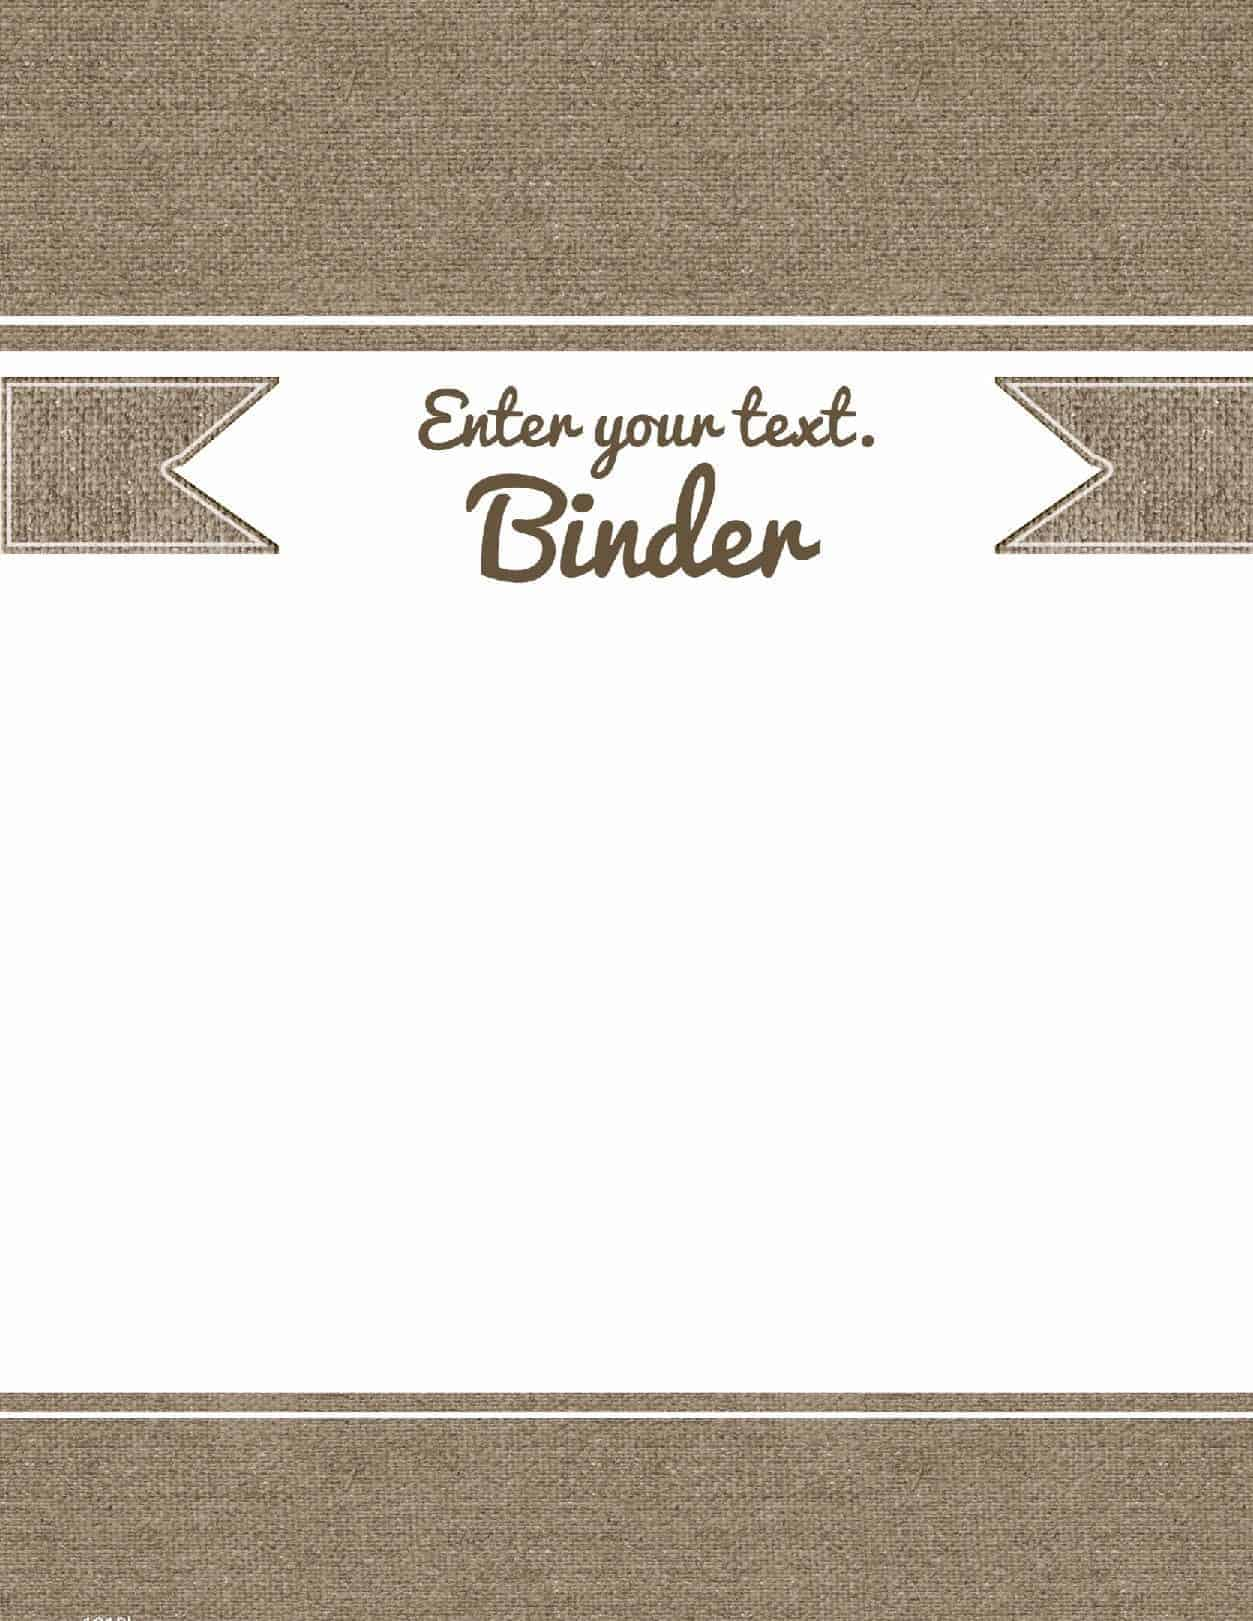 photograph regarding Binder Cover Templates Printable titled Totally free Binder Include Templates Customise On the web Print at